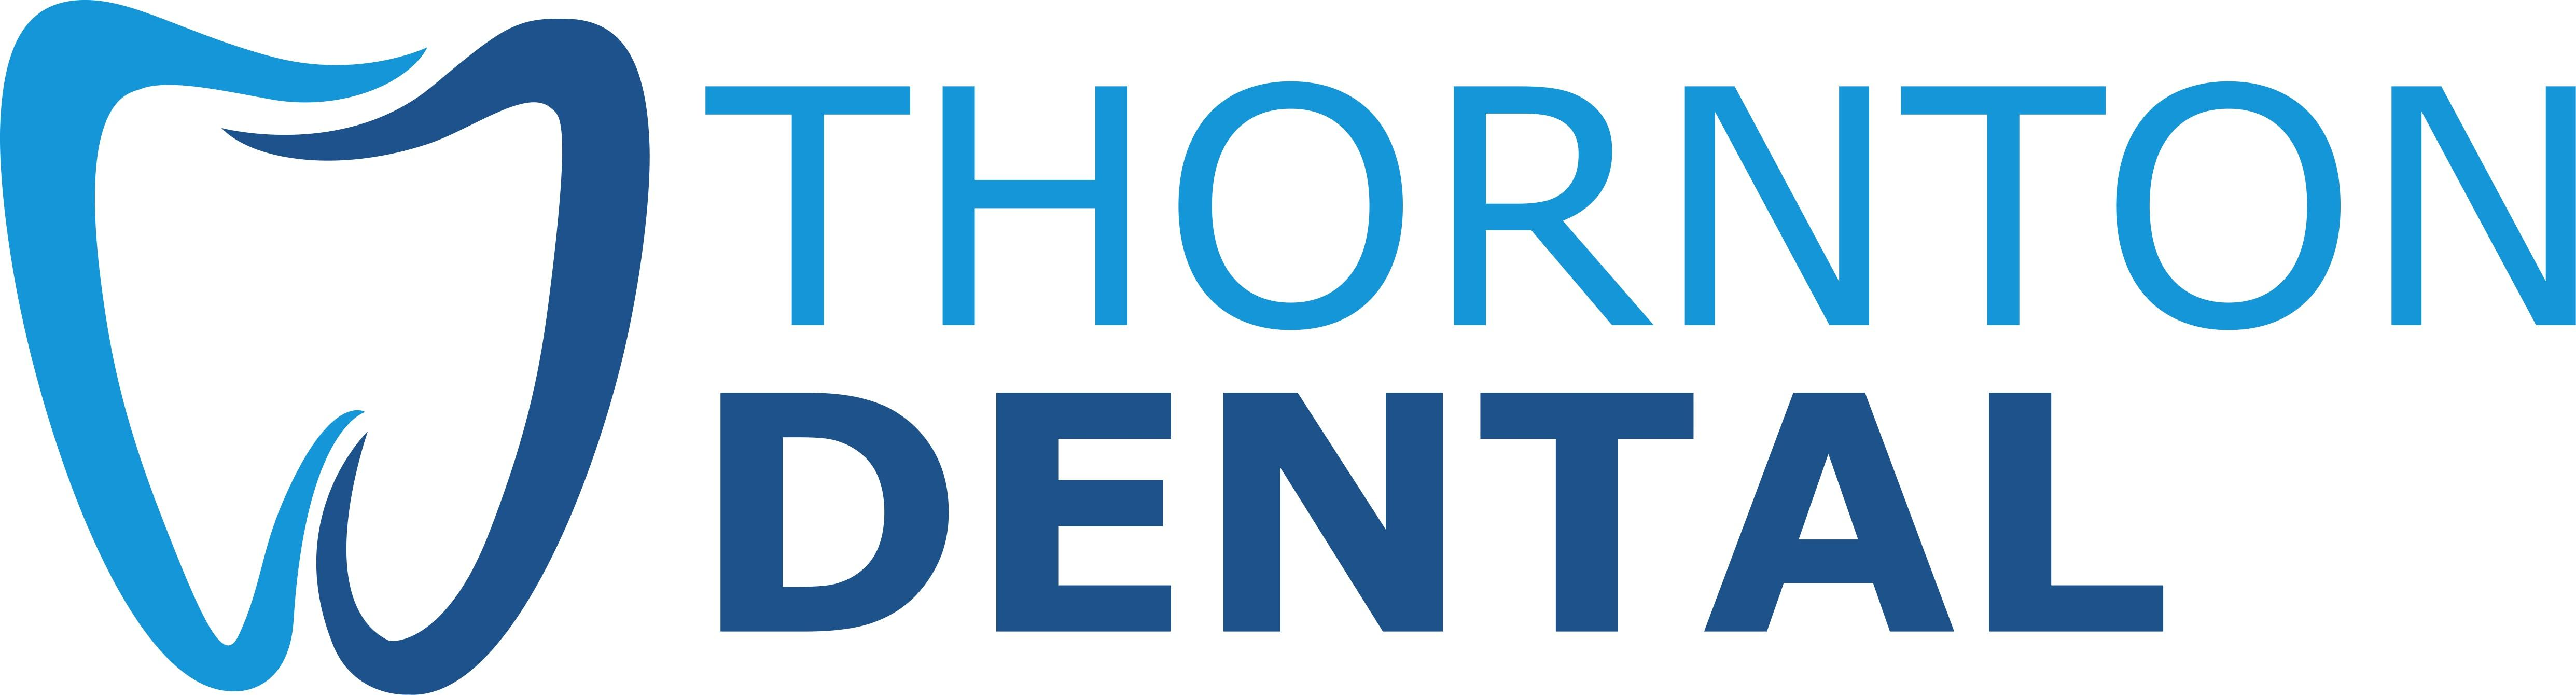 Thornton Dental